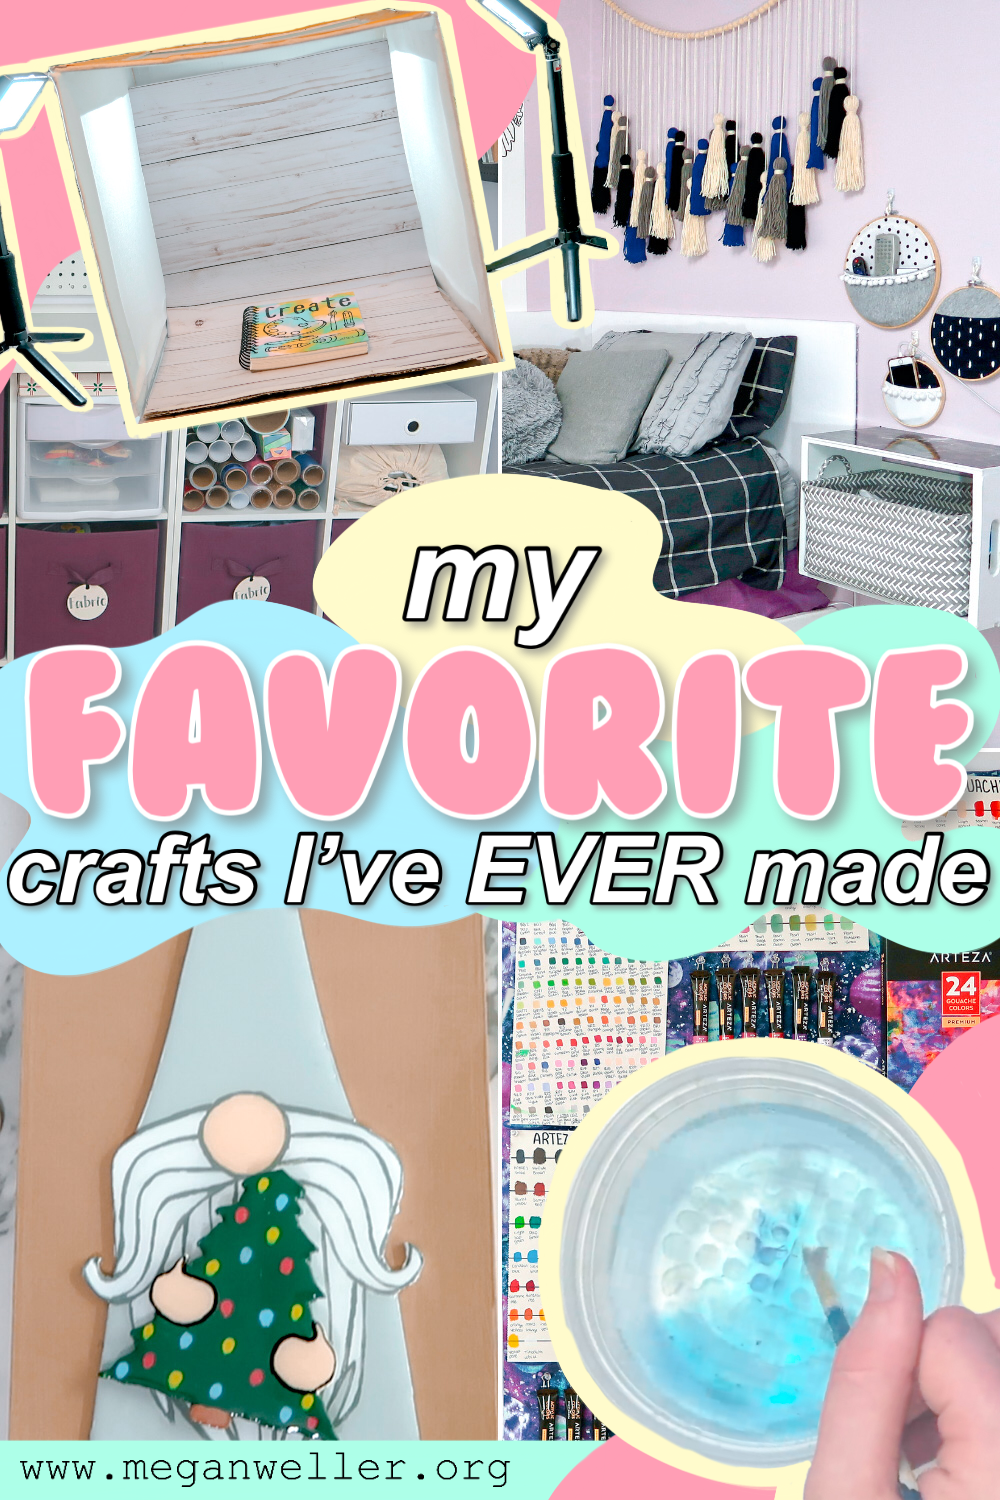 My FAVORITE crafts that I've EVER made! 10 easy crafts to make when you're bored.